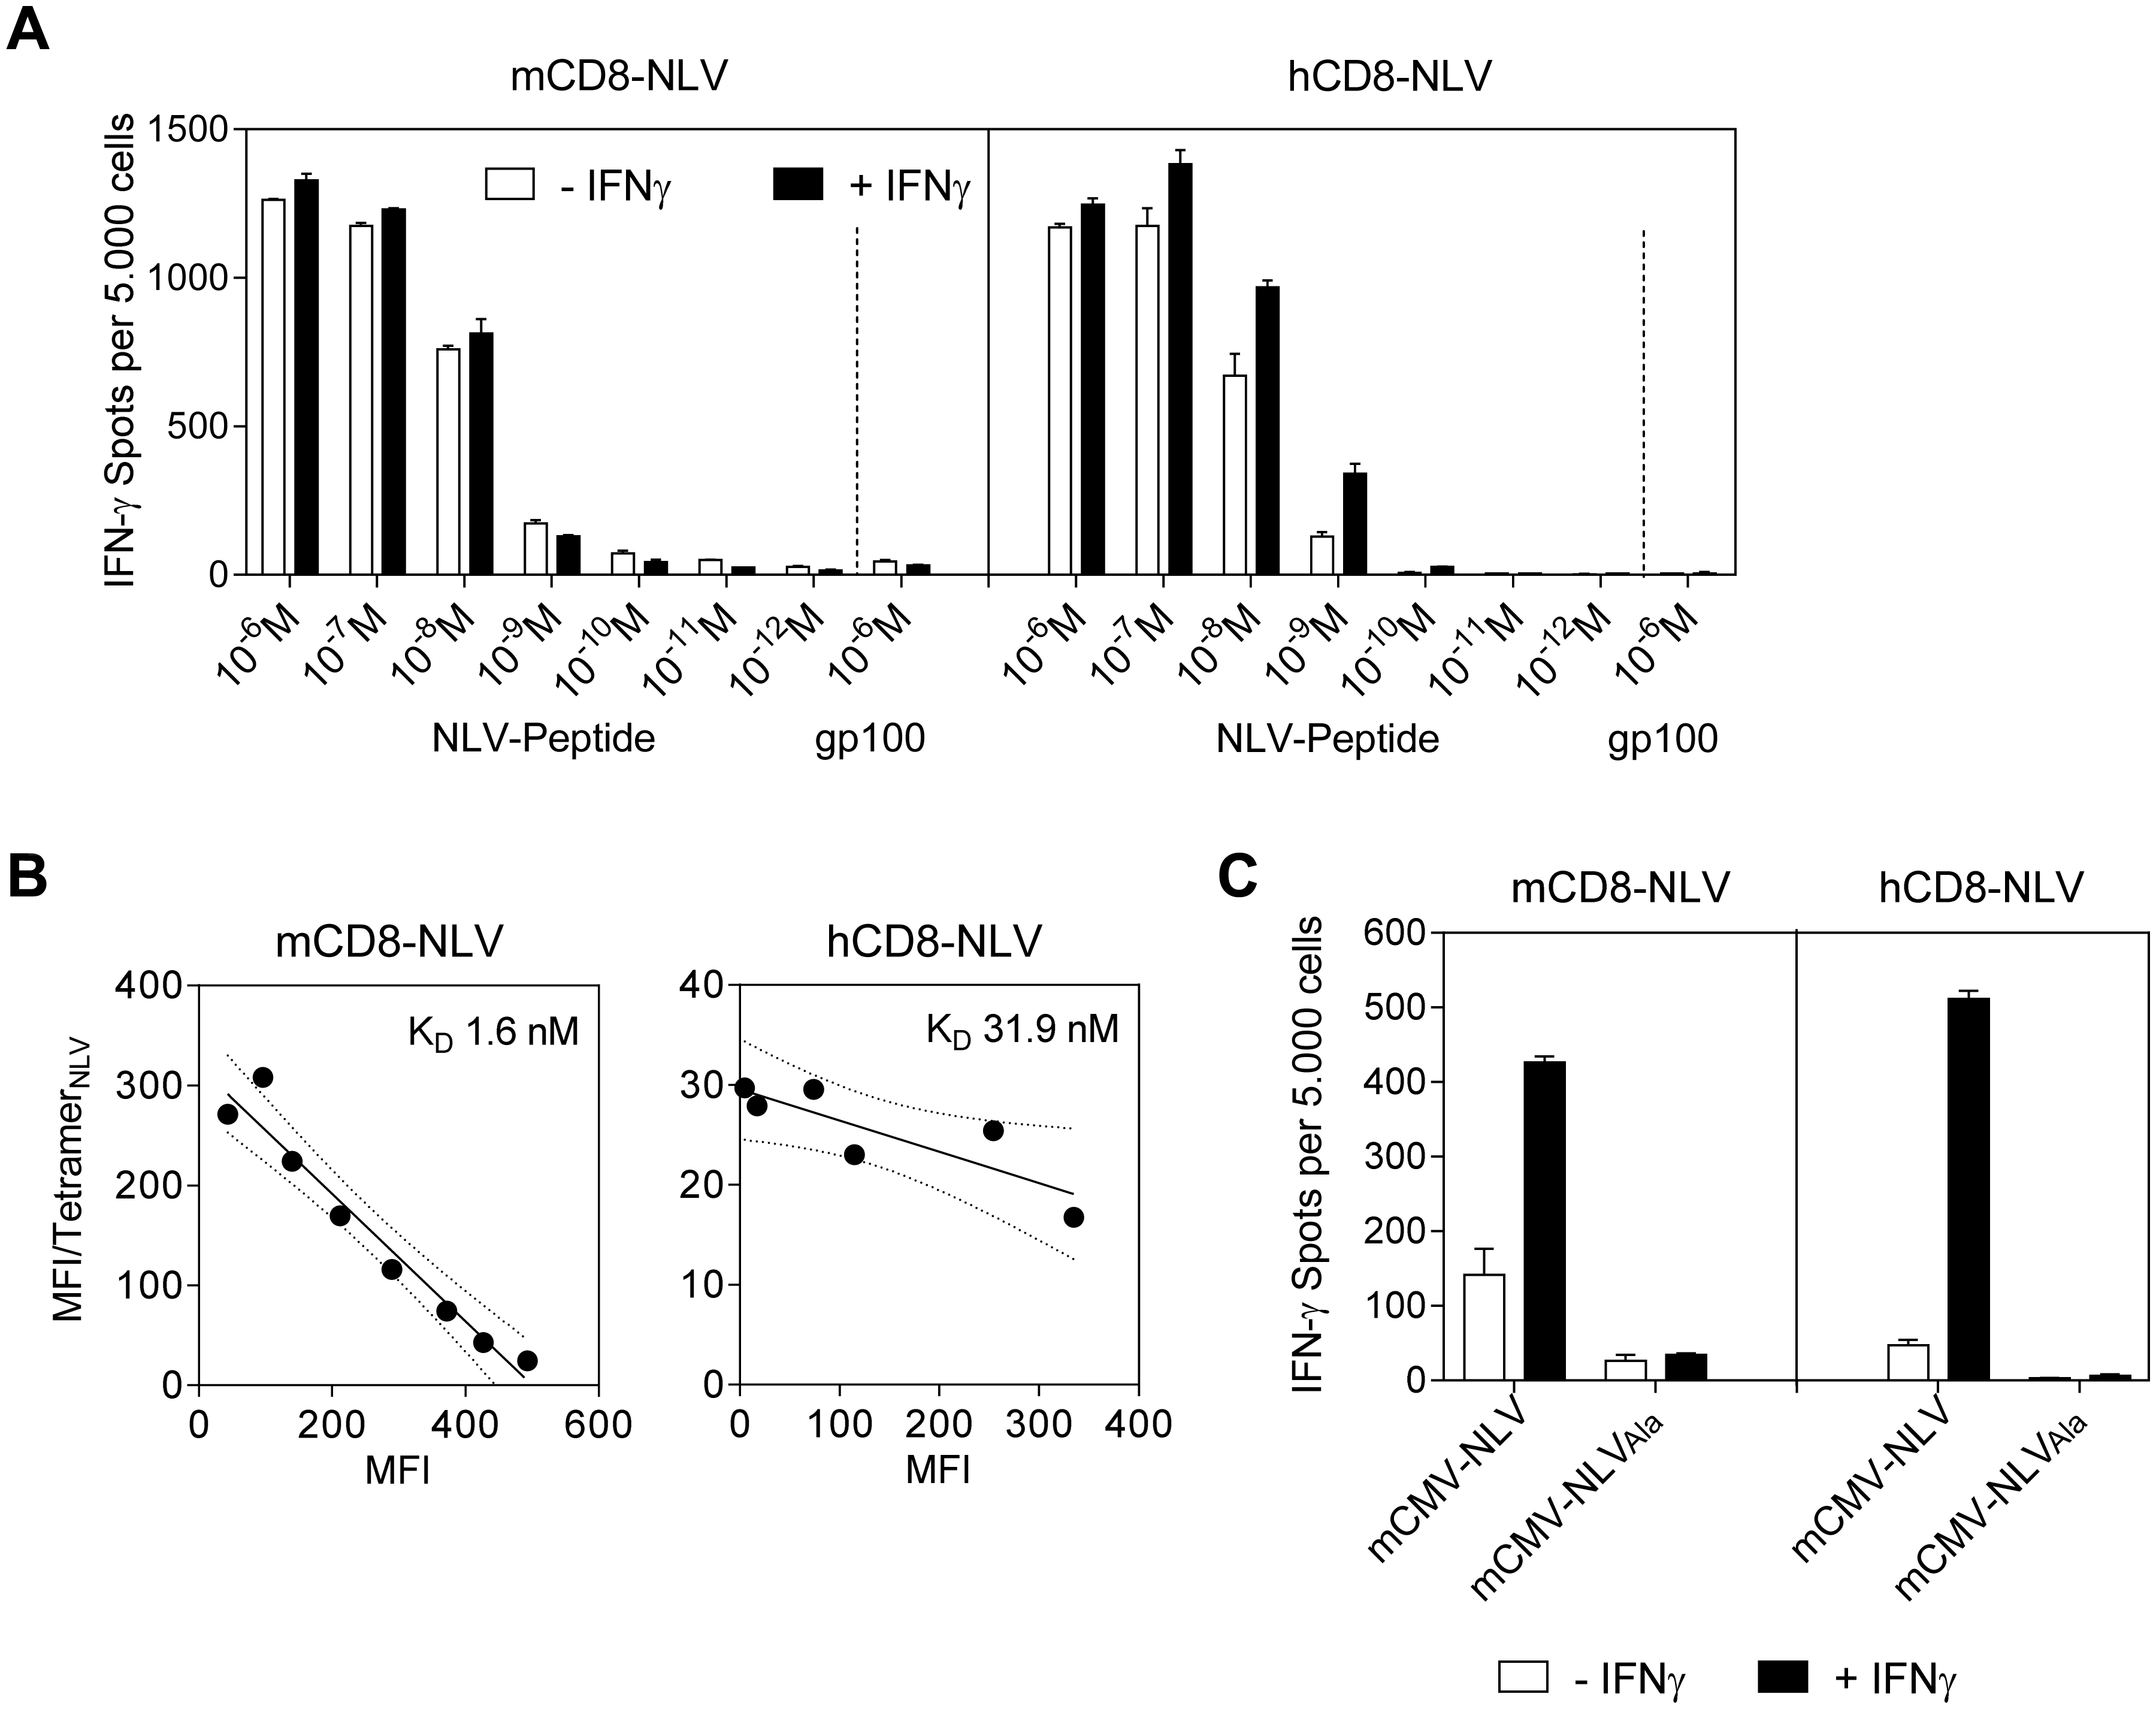 Epitope recognition by NLV peptide specific CD8 T cells.